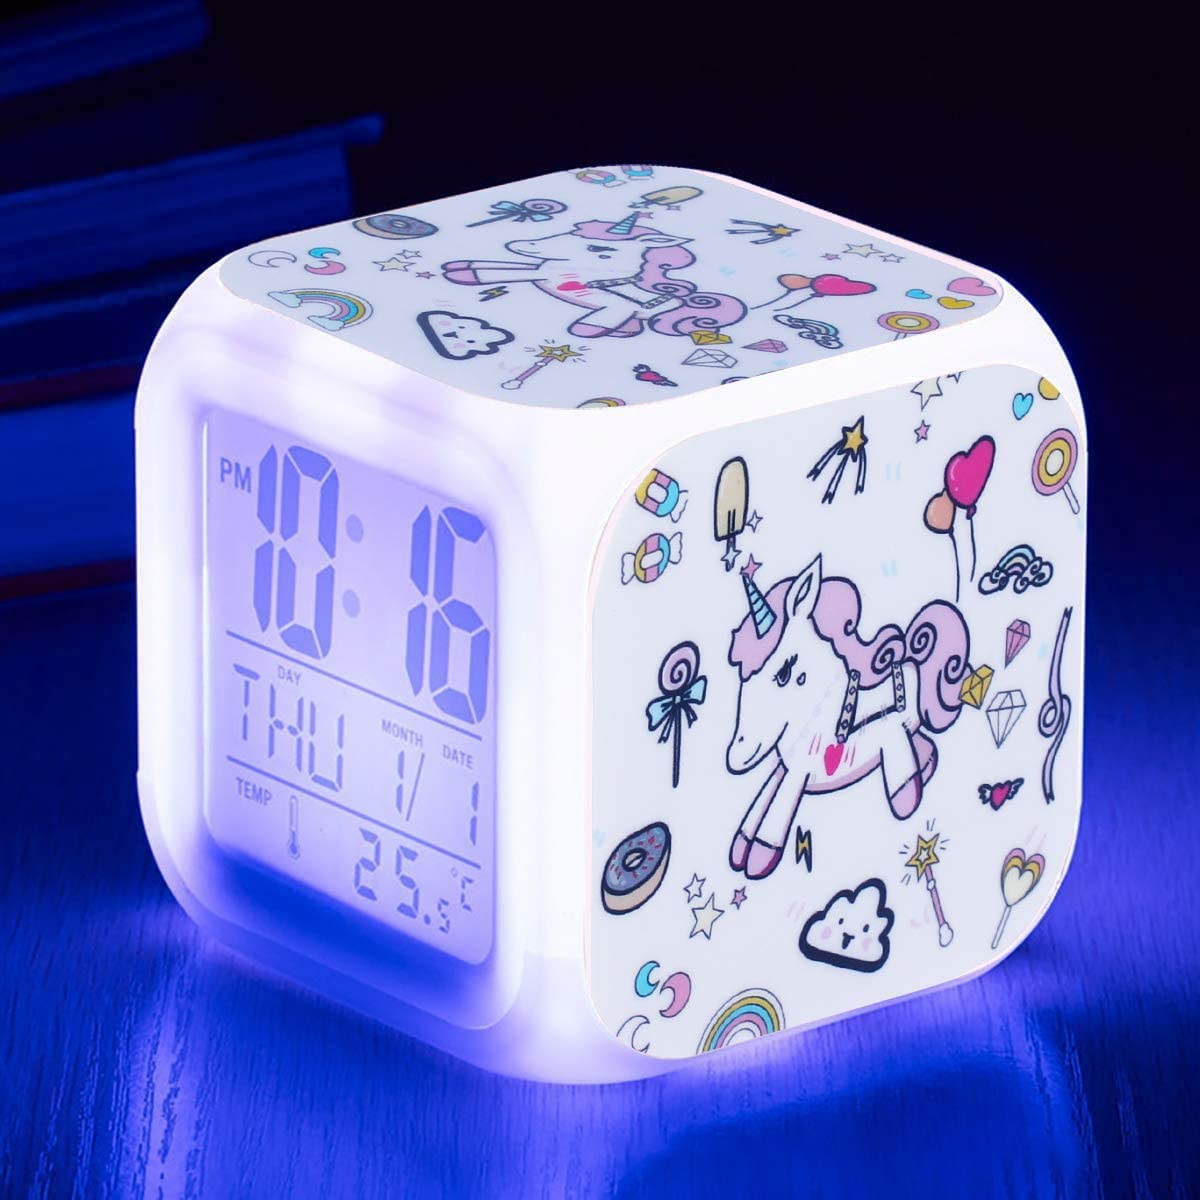 Qaxlry Unicorn Alarm Clocks,7-in-1 Night Light Kids Alarm Clocks with LED Glowing Bedroom Wake Up Alarm Clock Gifts for Unicorn Room Decor for Girls Bedroom (White)